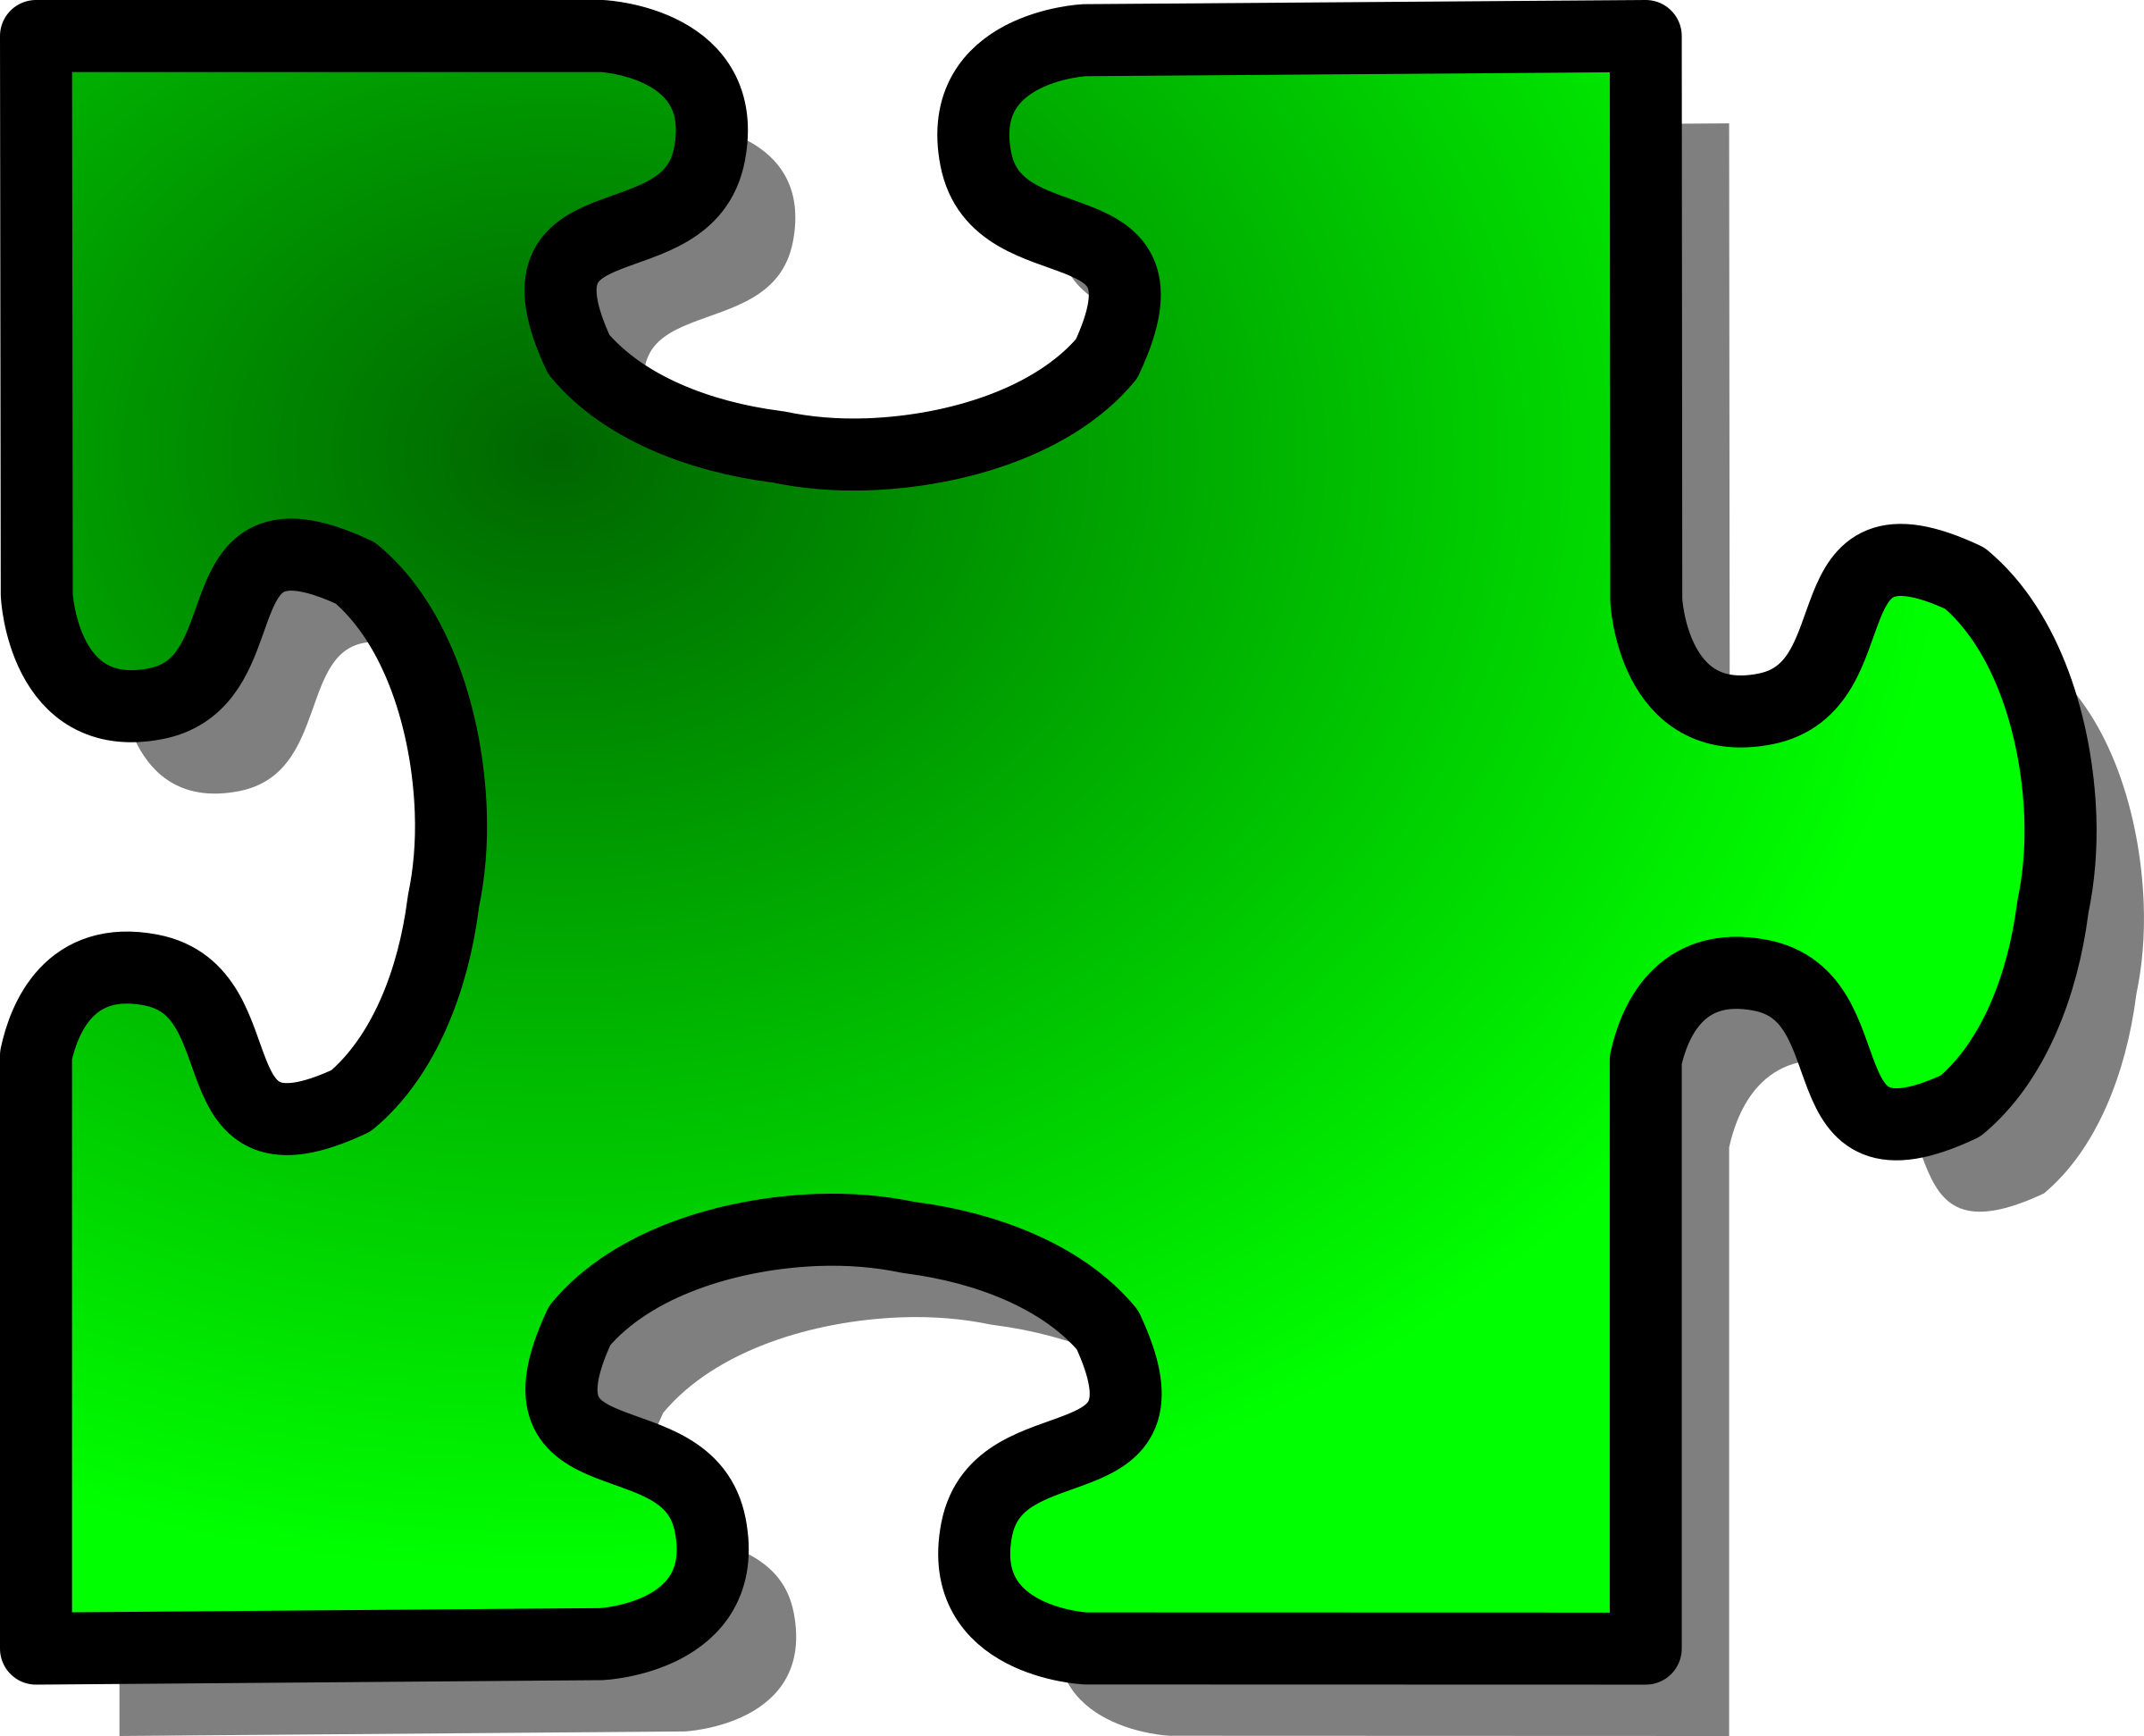 Green Jigsaw piece 14 by nicubunu